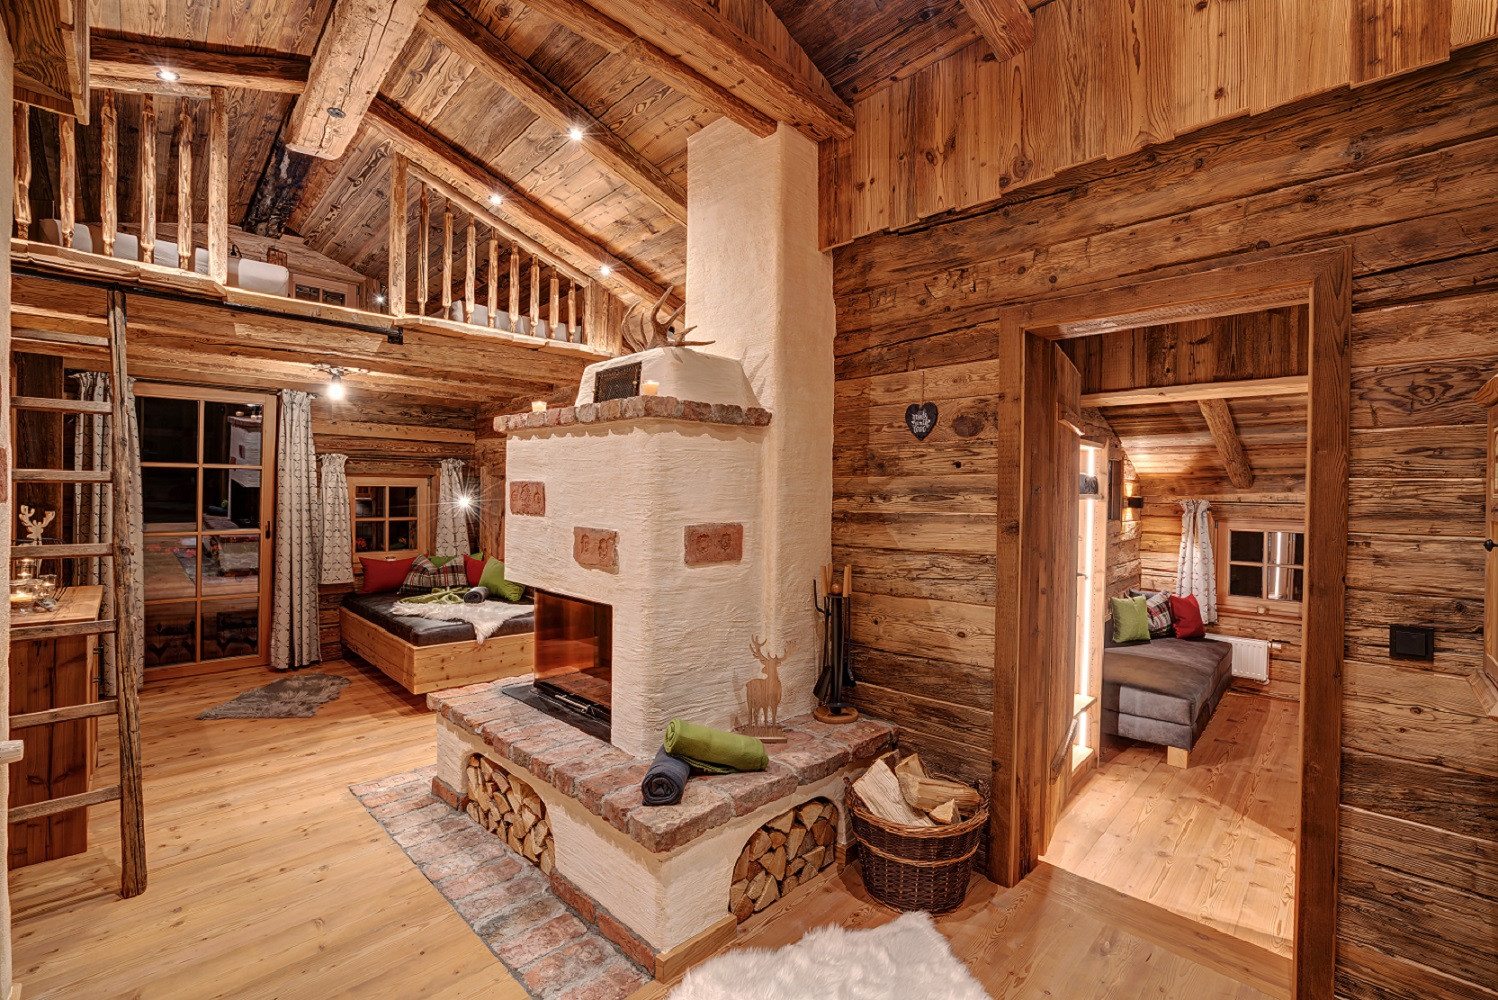 Highking_Chalet_Grünegg_1